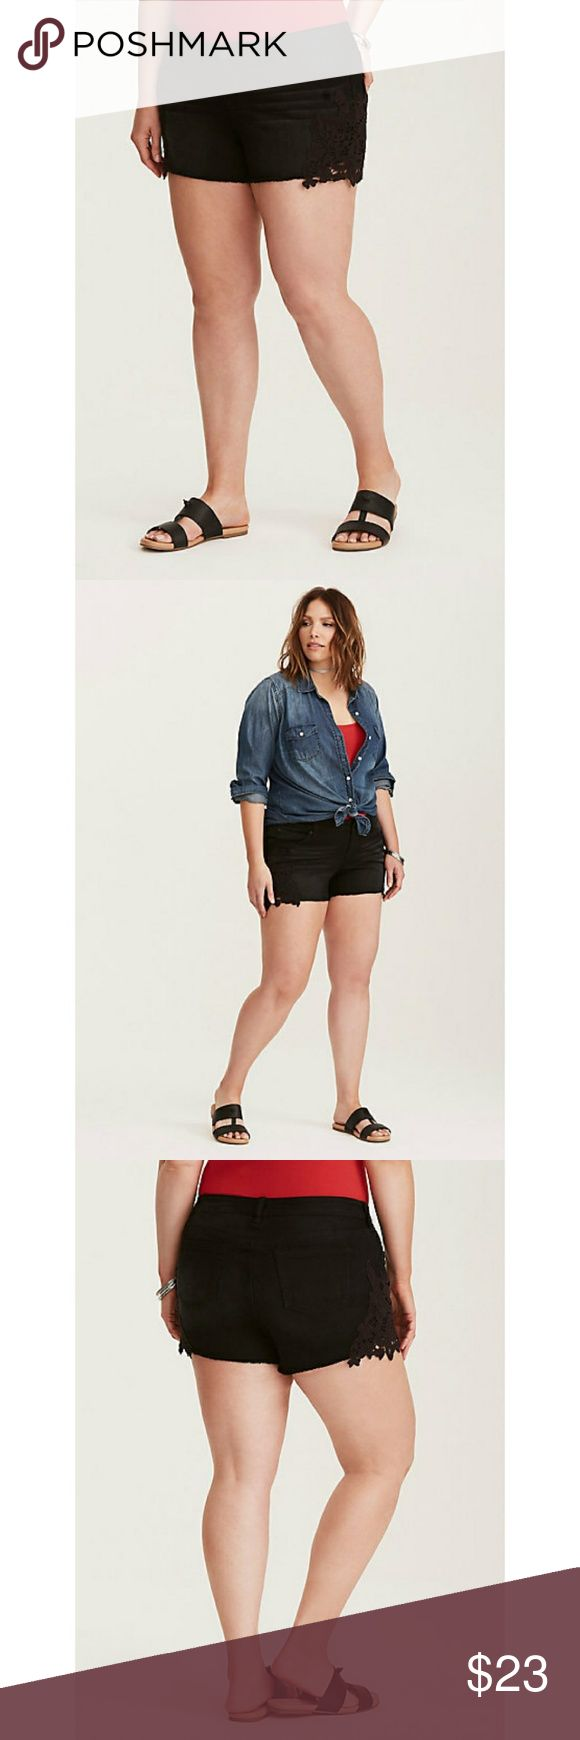 """NWT Size 20 Torrid Vintage Black Crochet Shorts NWT Size 20 Torrid Vintage Black Crochet Denim Shorts. The frayed short short style looks rocker chic at first with a black wash that's been faded. But lace insets on the sides sweeten up the style, the perfect motivation to rock shorts all summer long.  Mid-rise. 3.5"""" inseam. 98% cotton/ 2% spandex.  Please check out my other listings 😘 torrid Shorts Jean Shorts"""